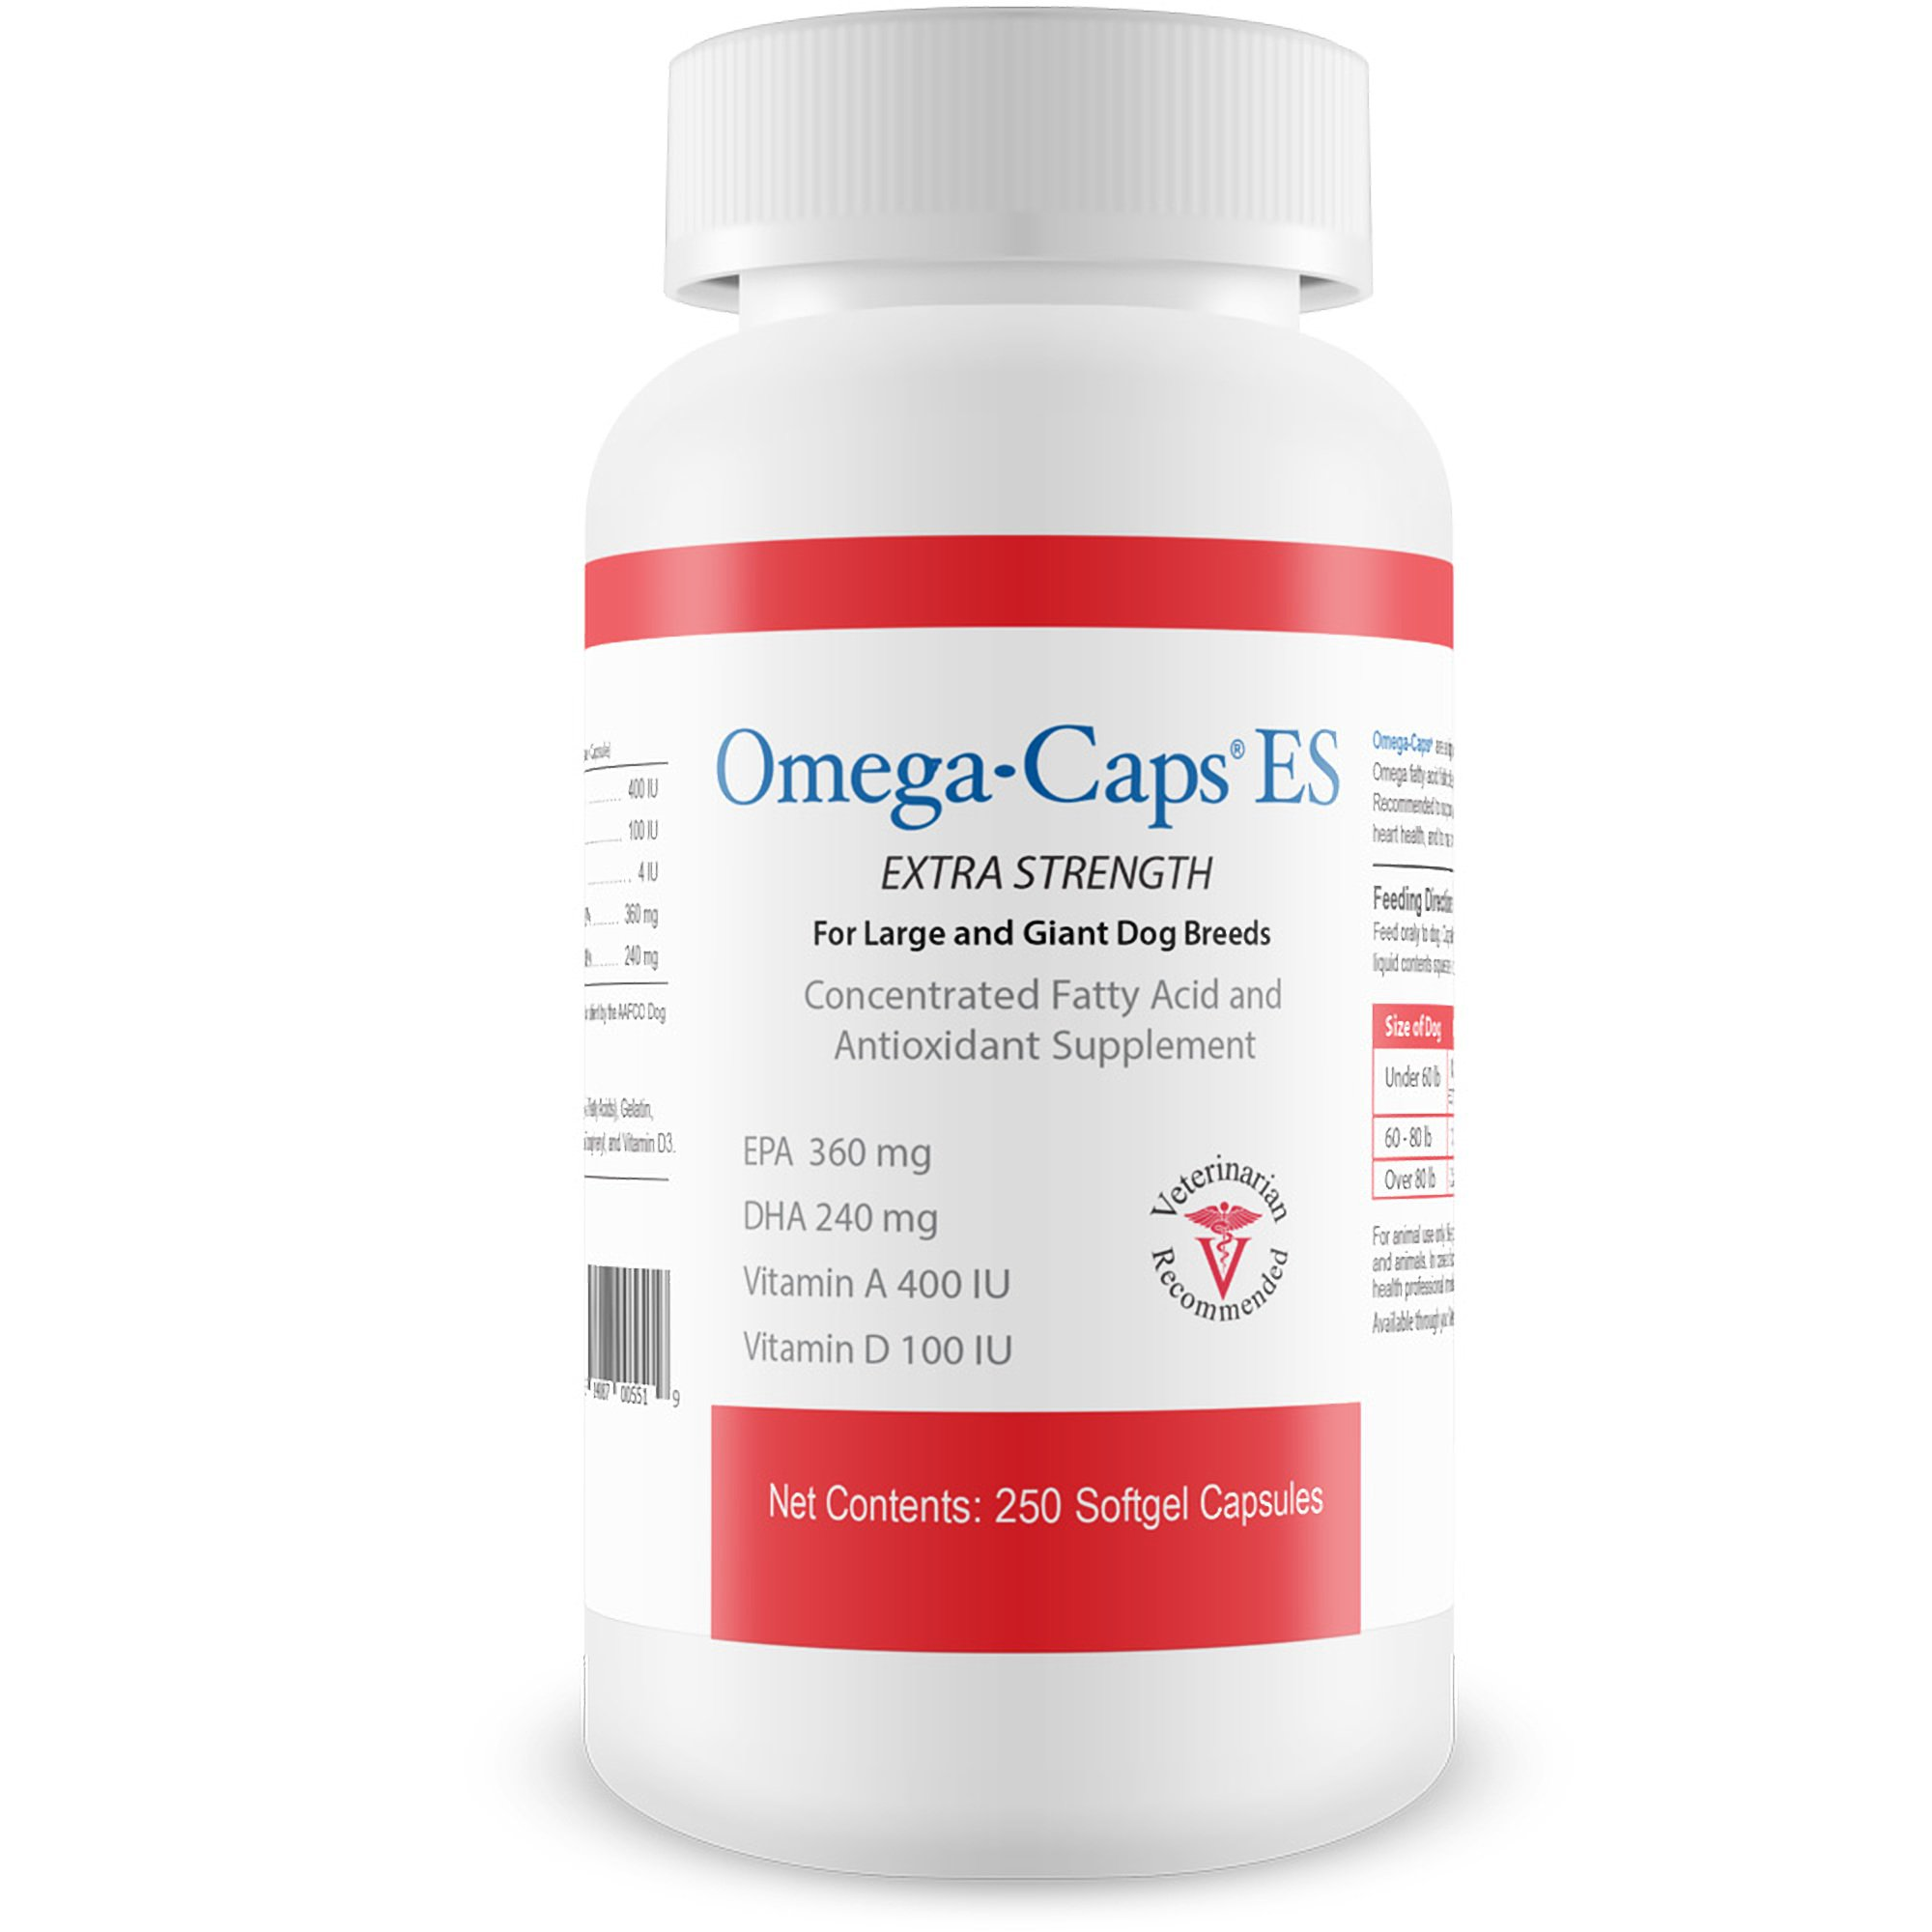 Pet Health Solutions Omega-Caps ES Large & Giant Dogs - Omega 3, Vitamins, Minerals, Antioxidants - Support Immune System, Joints, Heart Brain - 250 Softgel Capsules